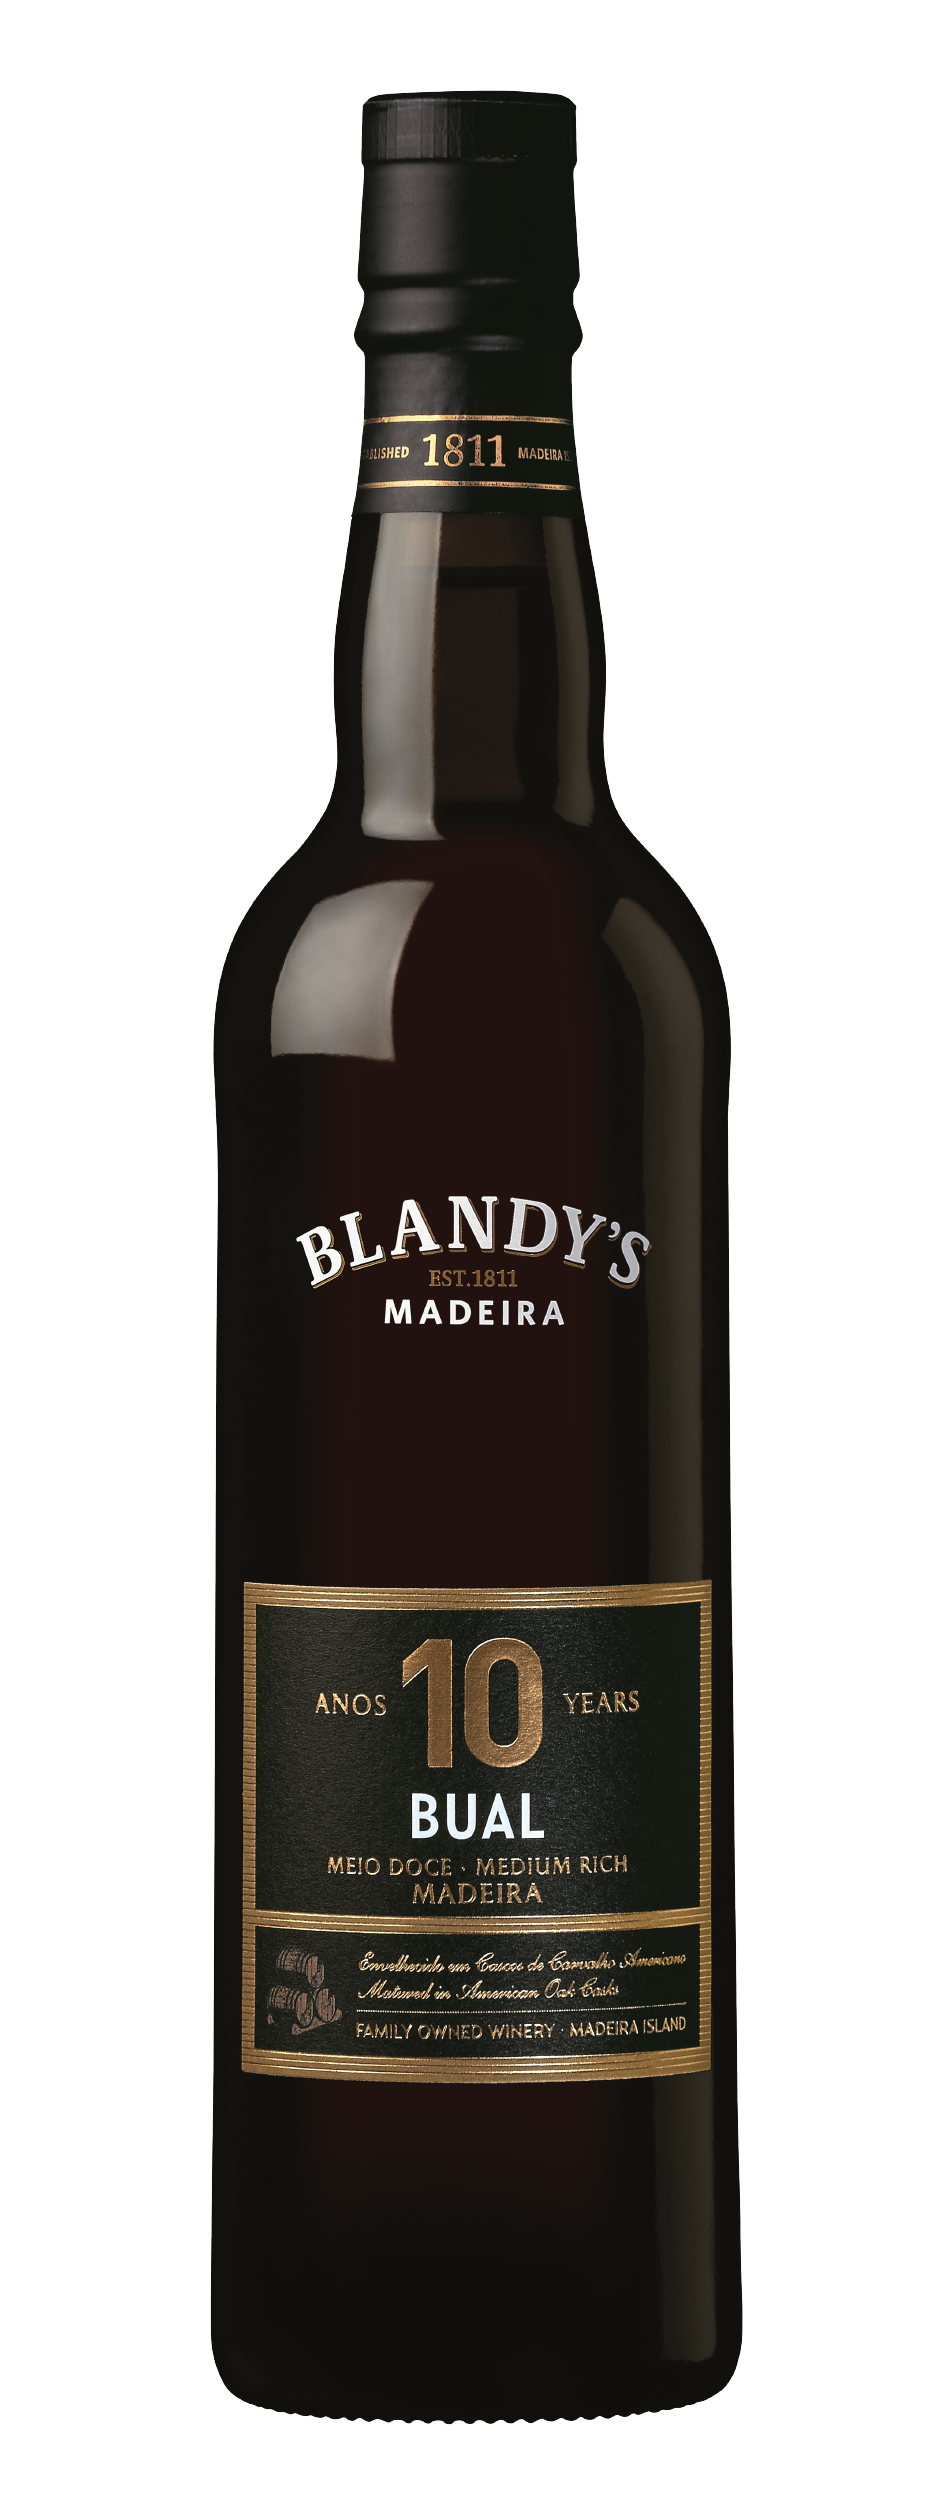 Product Image for BLANDY'S BUAL 10 YEAR OLD